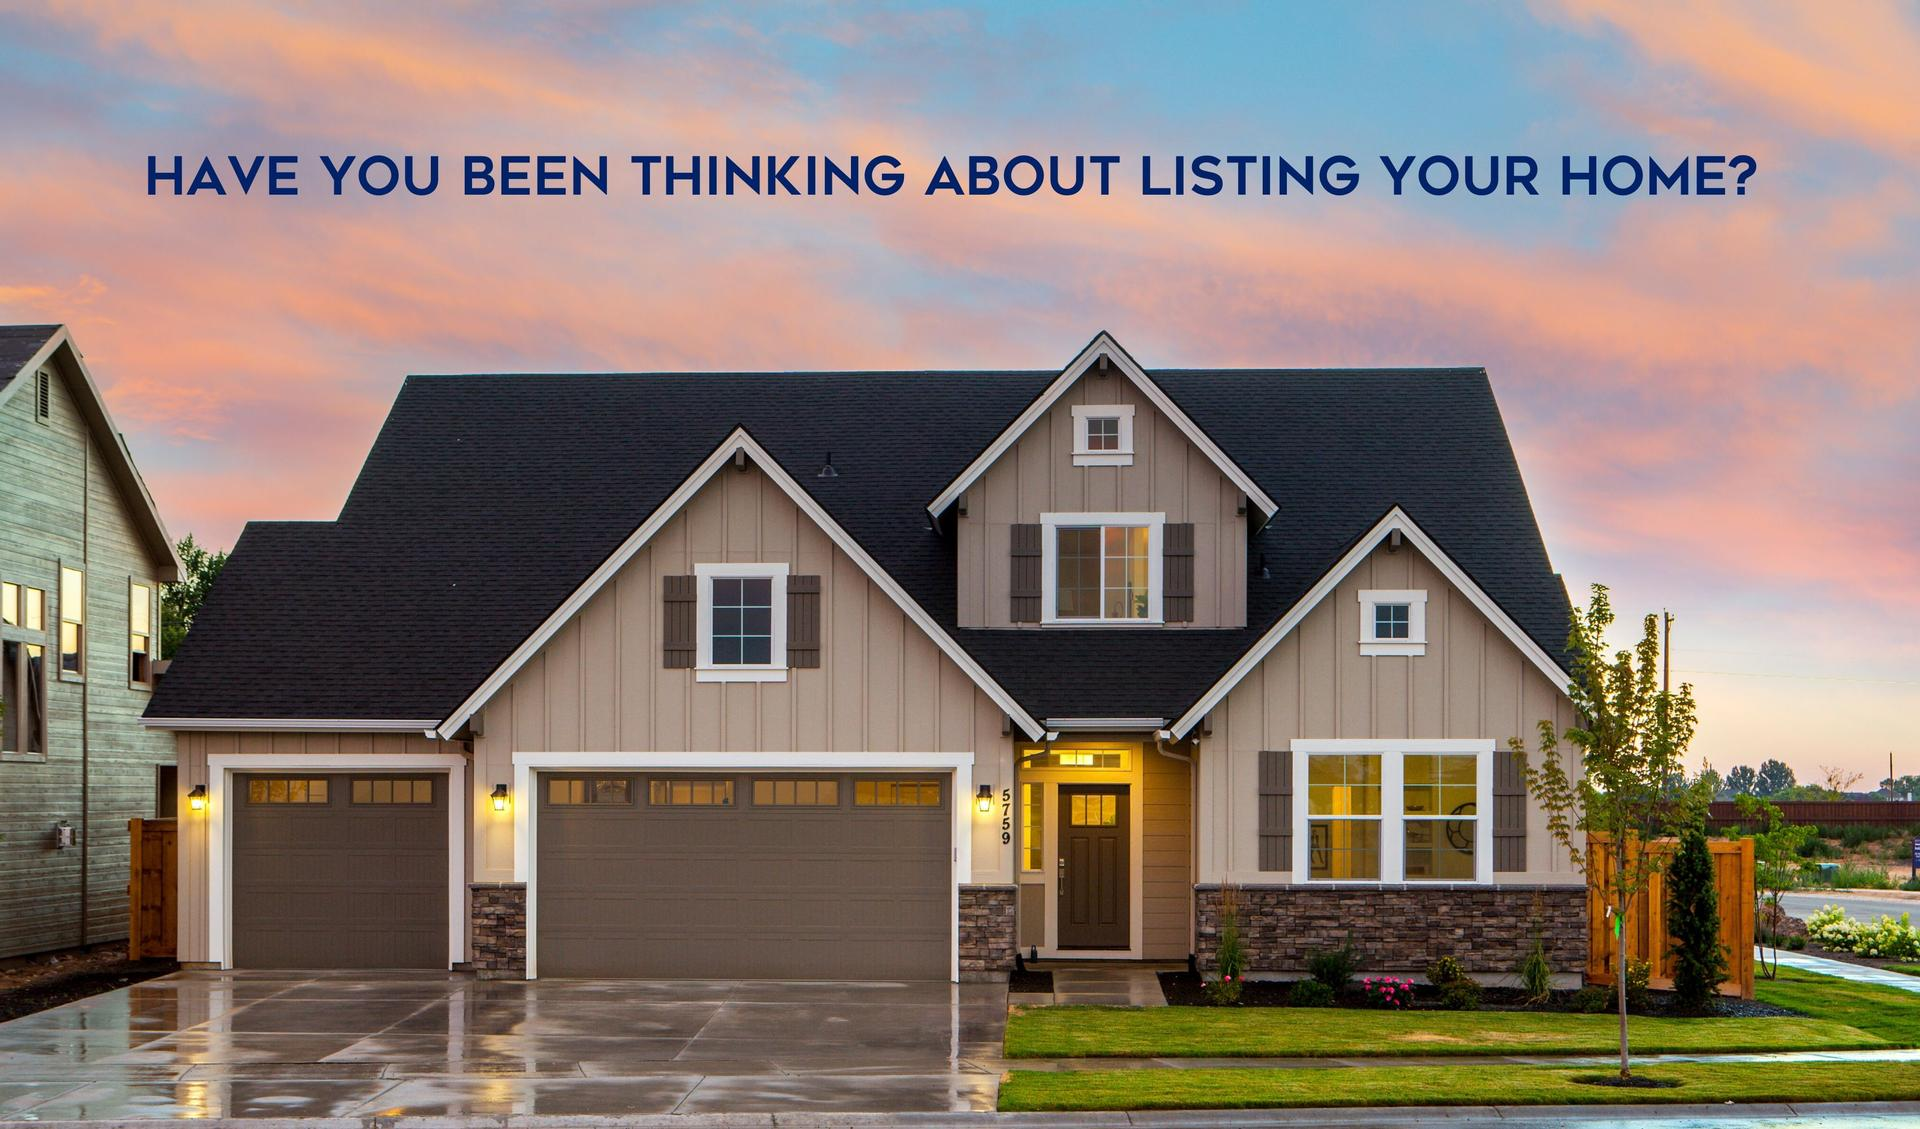 Hear from our agents on what they consider the most important things to prepare to list your home! Main Photo